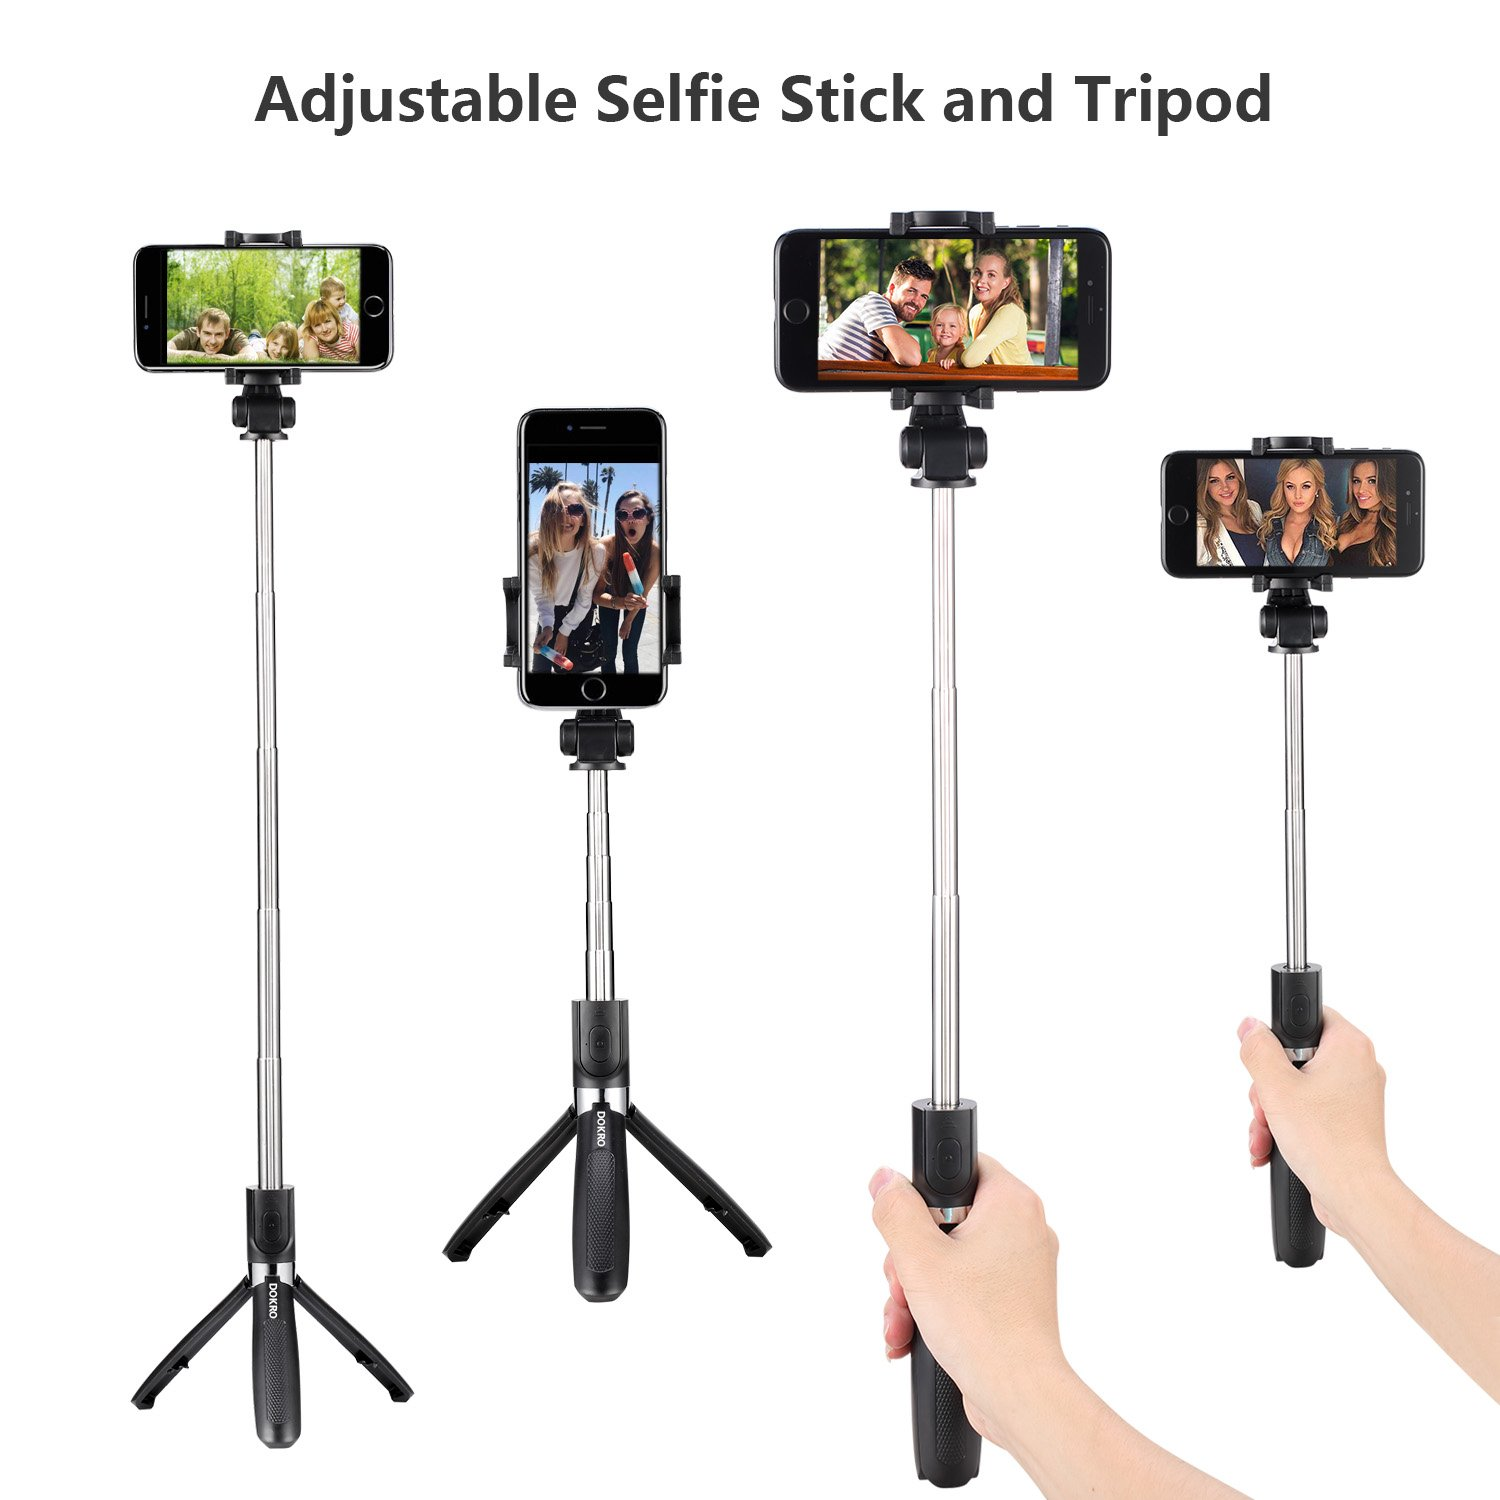 DOKRO Selfie Stick Tripod Stand Holder Extendable with Bluetooth Remote for iPhone x 8 6 7 plus Android Samsung Galaxy S7 S8 Blackberry Huawei by DOKRO (Image #4)